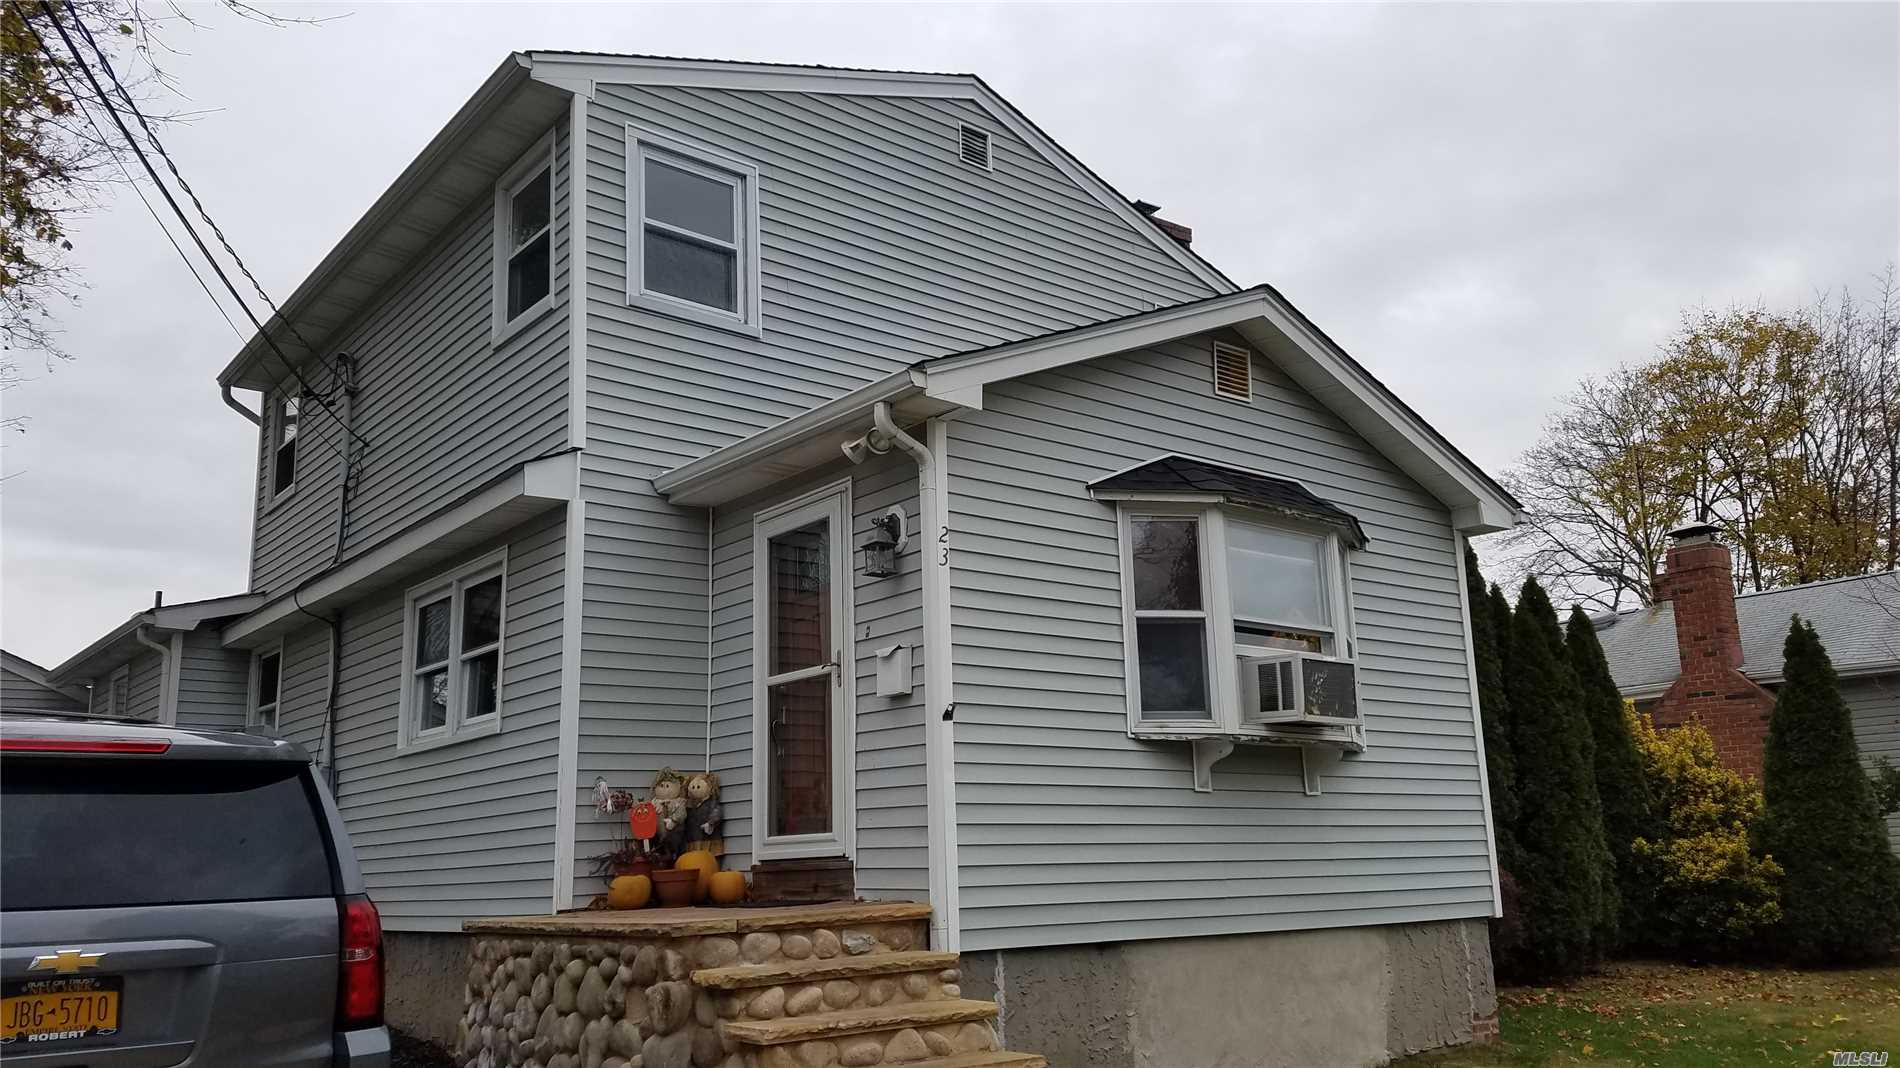 Lovely Colonial House With 2 To 3 Bedrooms, 2 Full Baths, Eat-In Kitchen, Living Room W/Fireplace, Den Or Master Bedroom Or Formal Dining Room W/Full Bath, Just Painted.